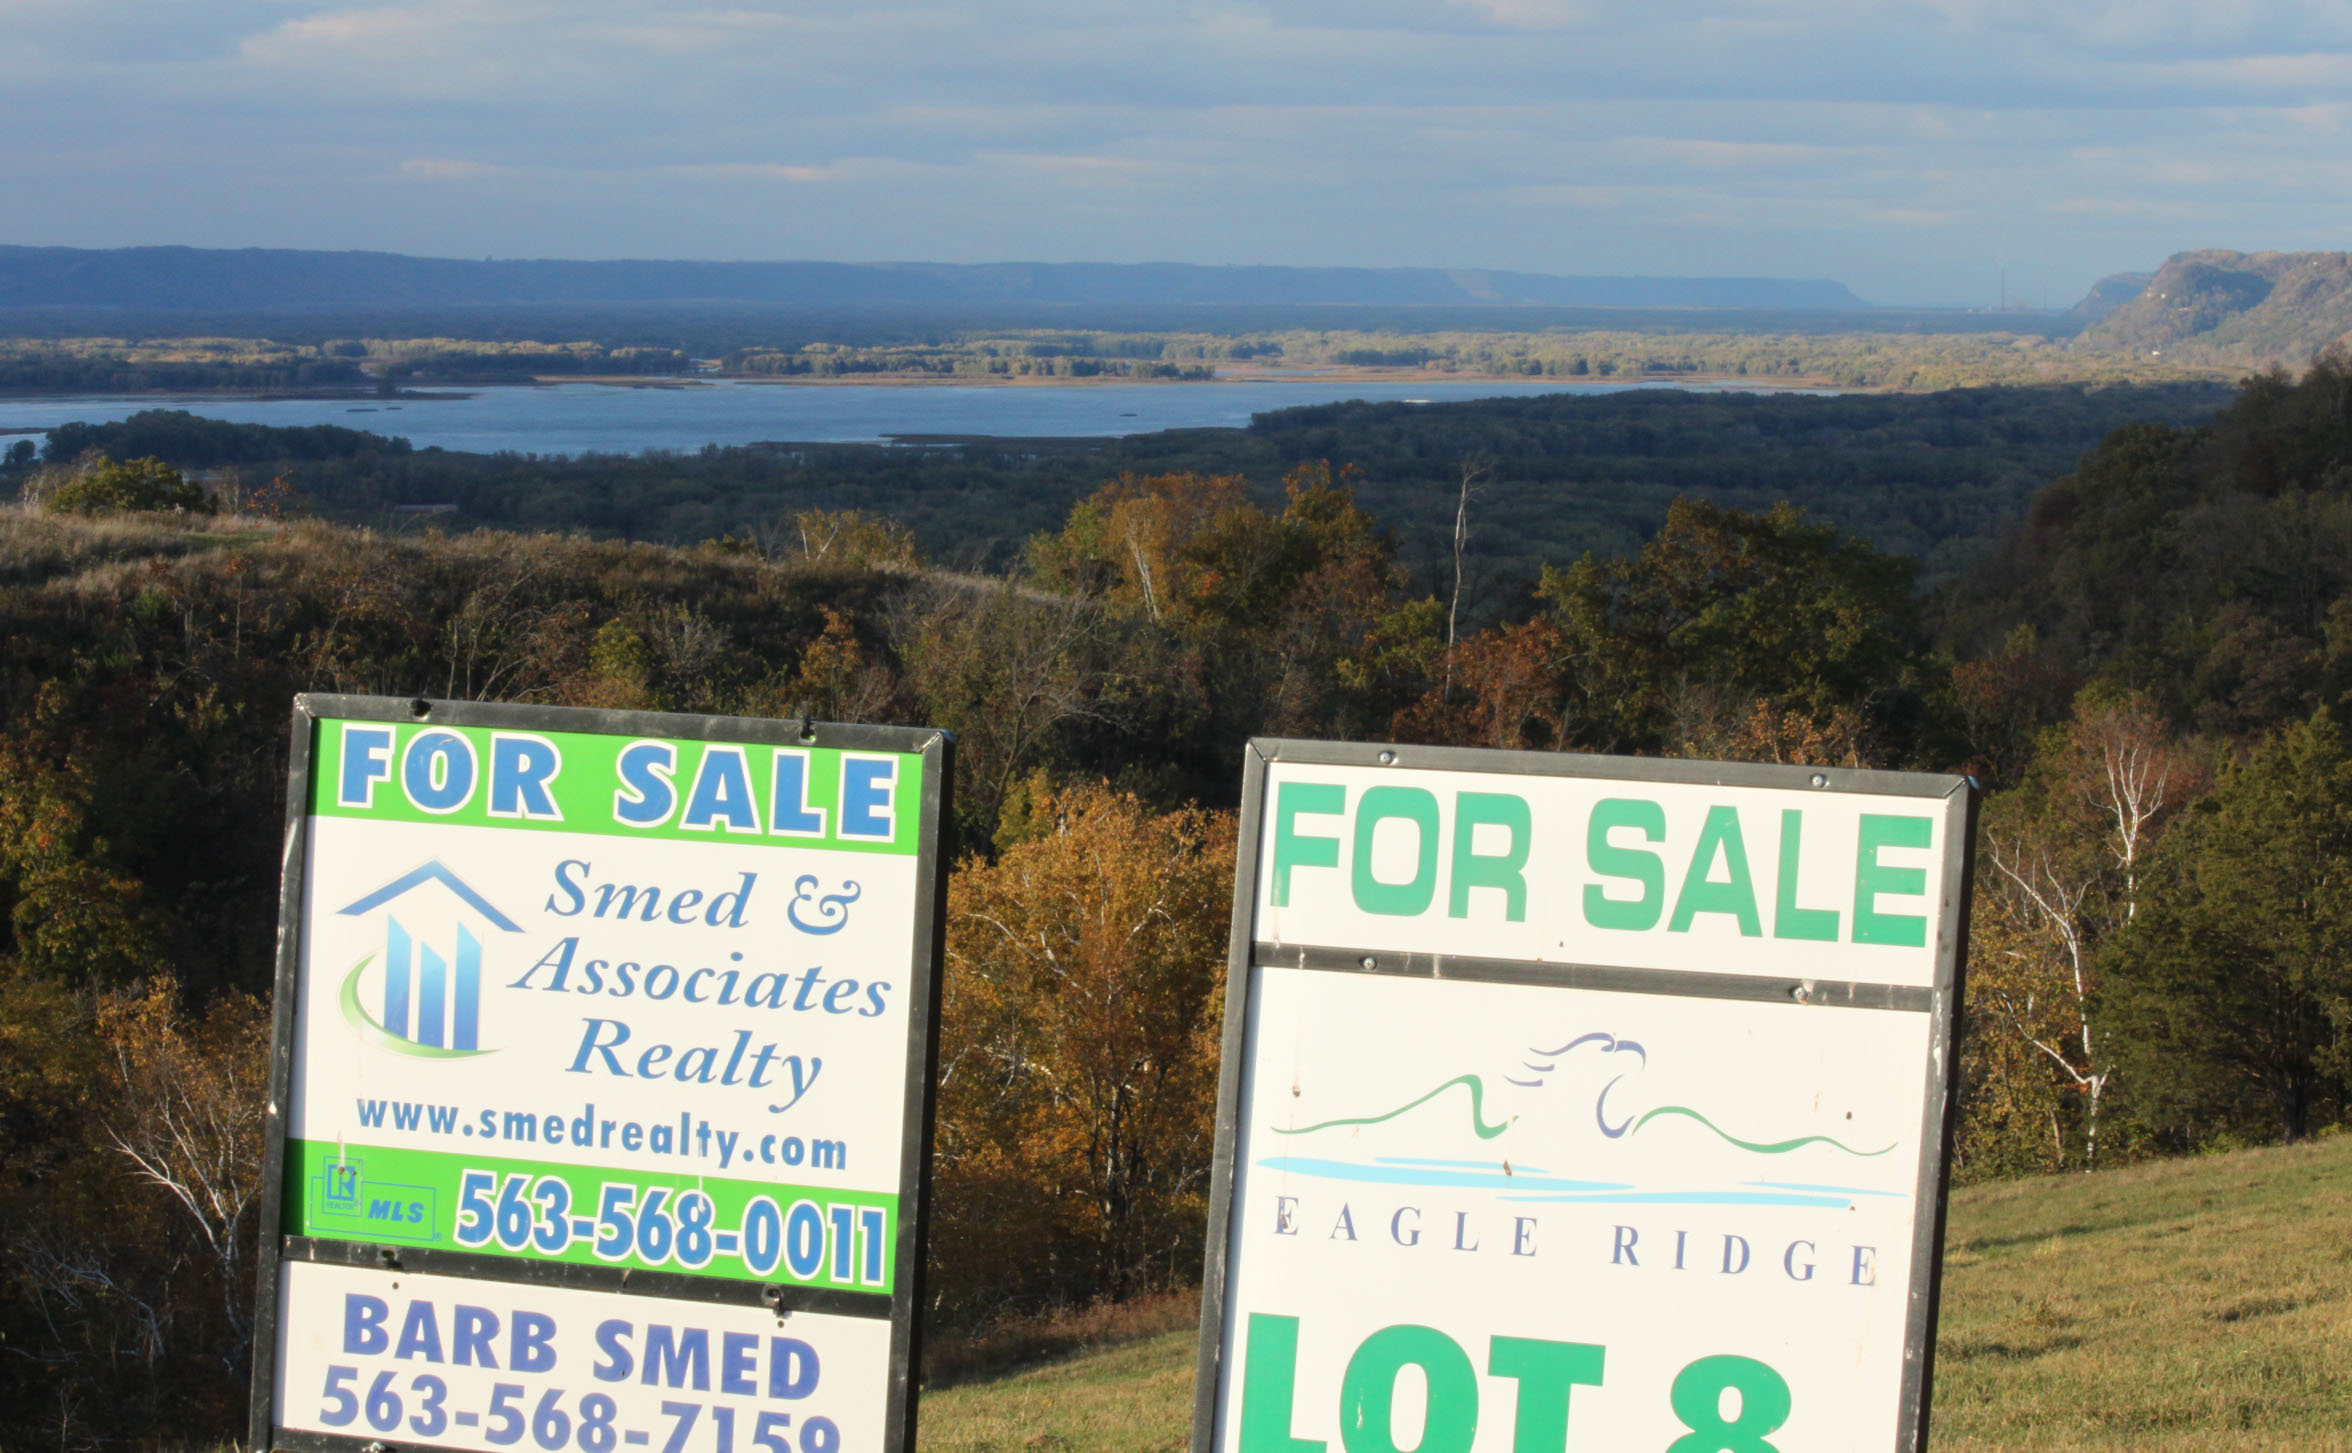 phase1-lot-8-riverview-for-sale